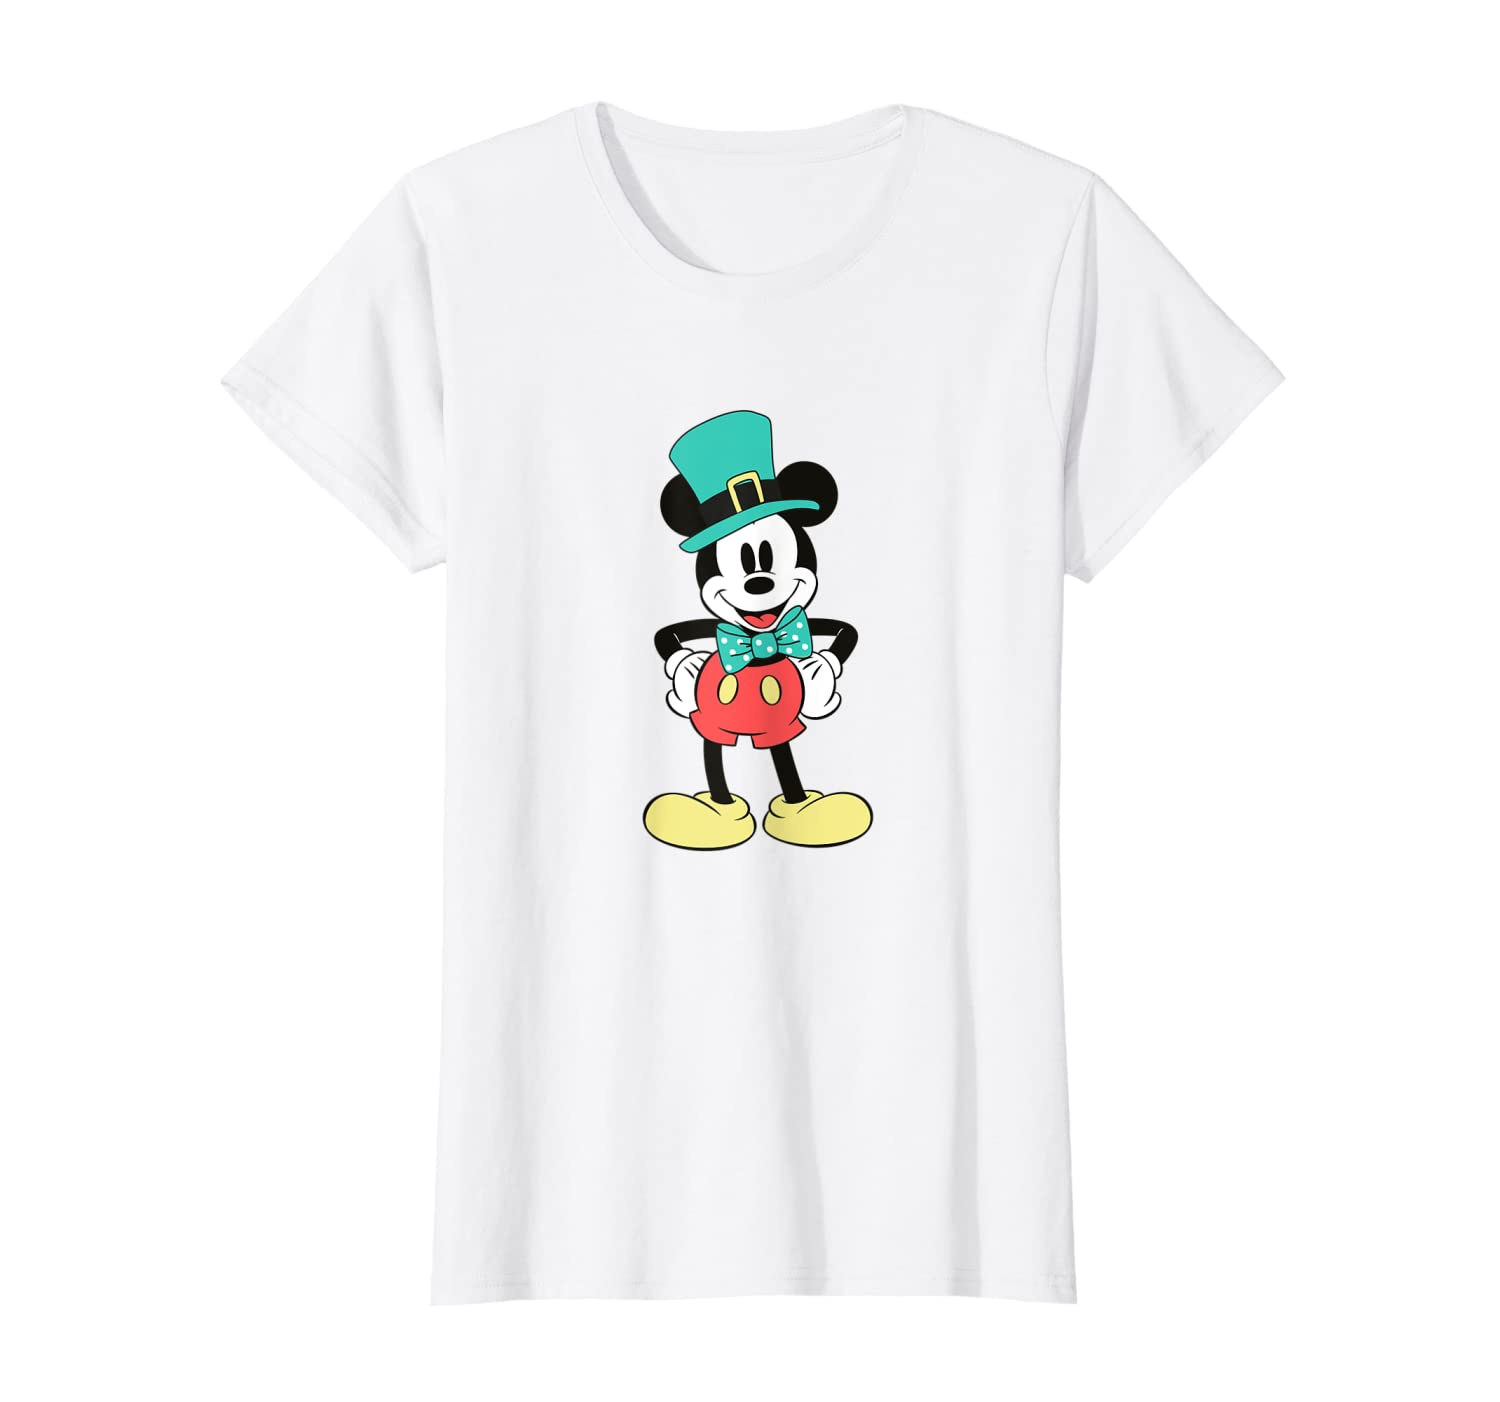 cb6cacd30 Amazon.com: Disney Mickey Mouse Irish Top Hat St. Patrick's Day T-Shirt:  Clothing